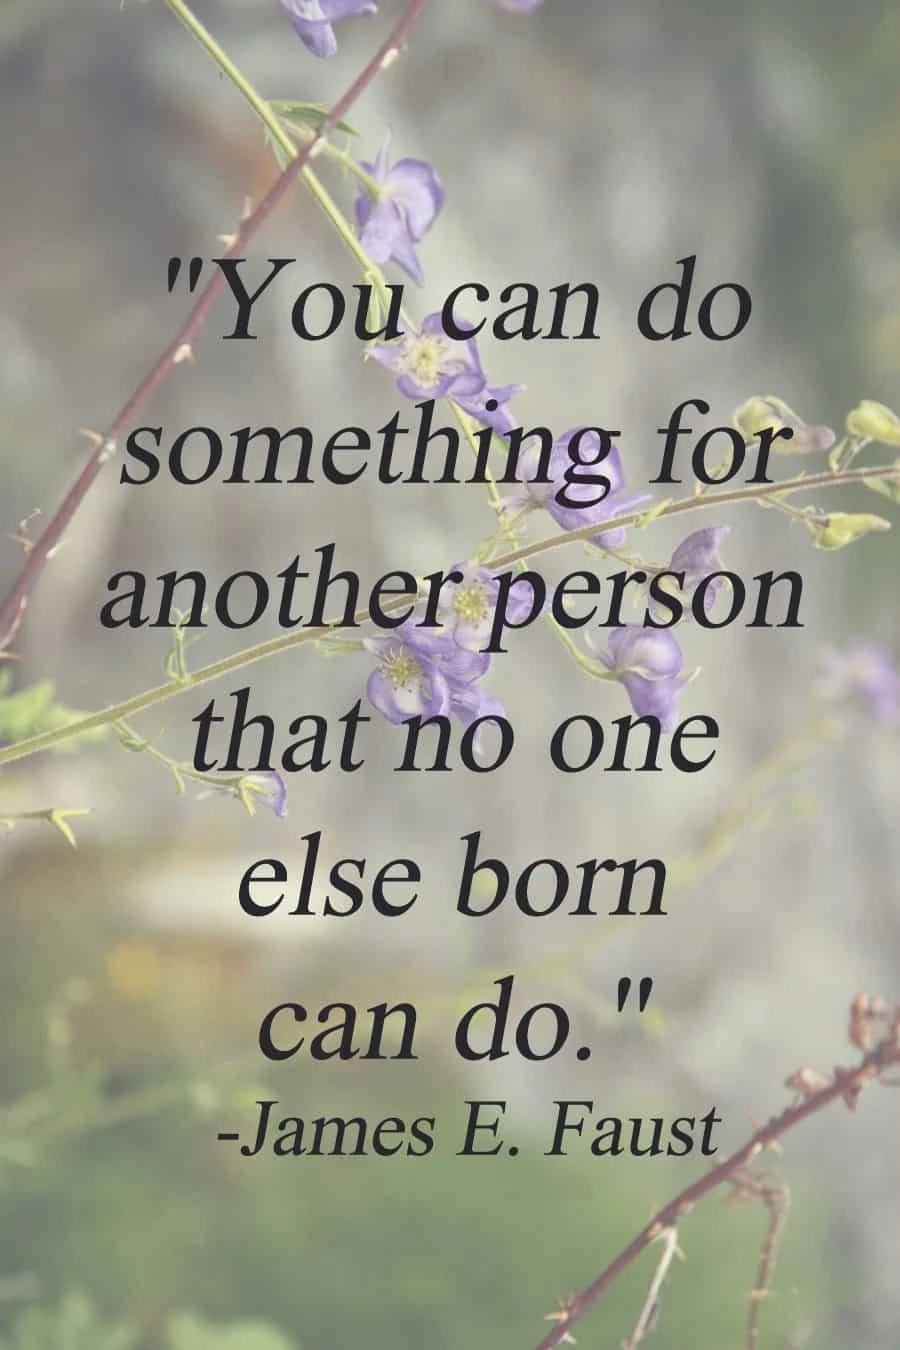 """""""You can do something for another person that no one else born can do."""" - James E. Faust   via The Spirited Violet"""